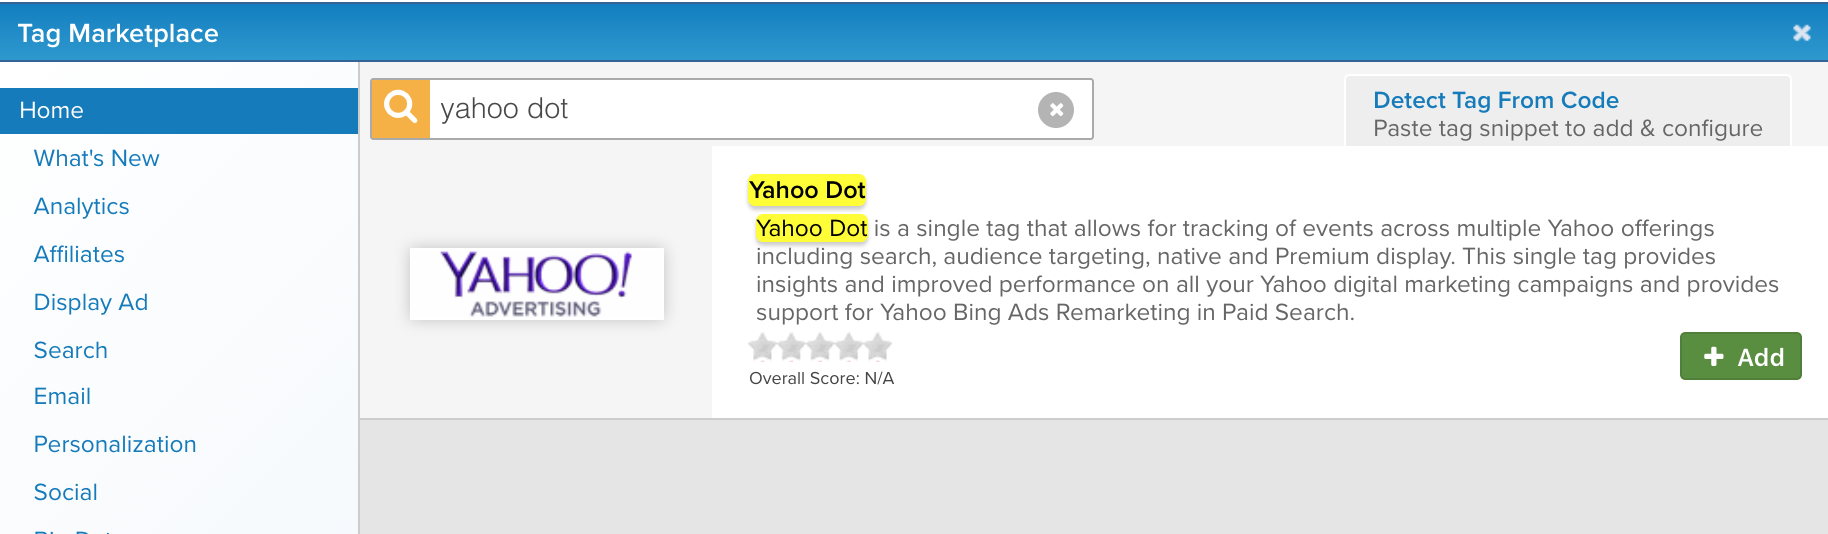 add yahoo dot